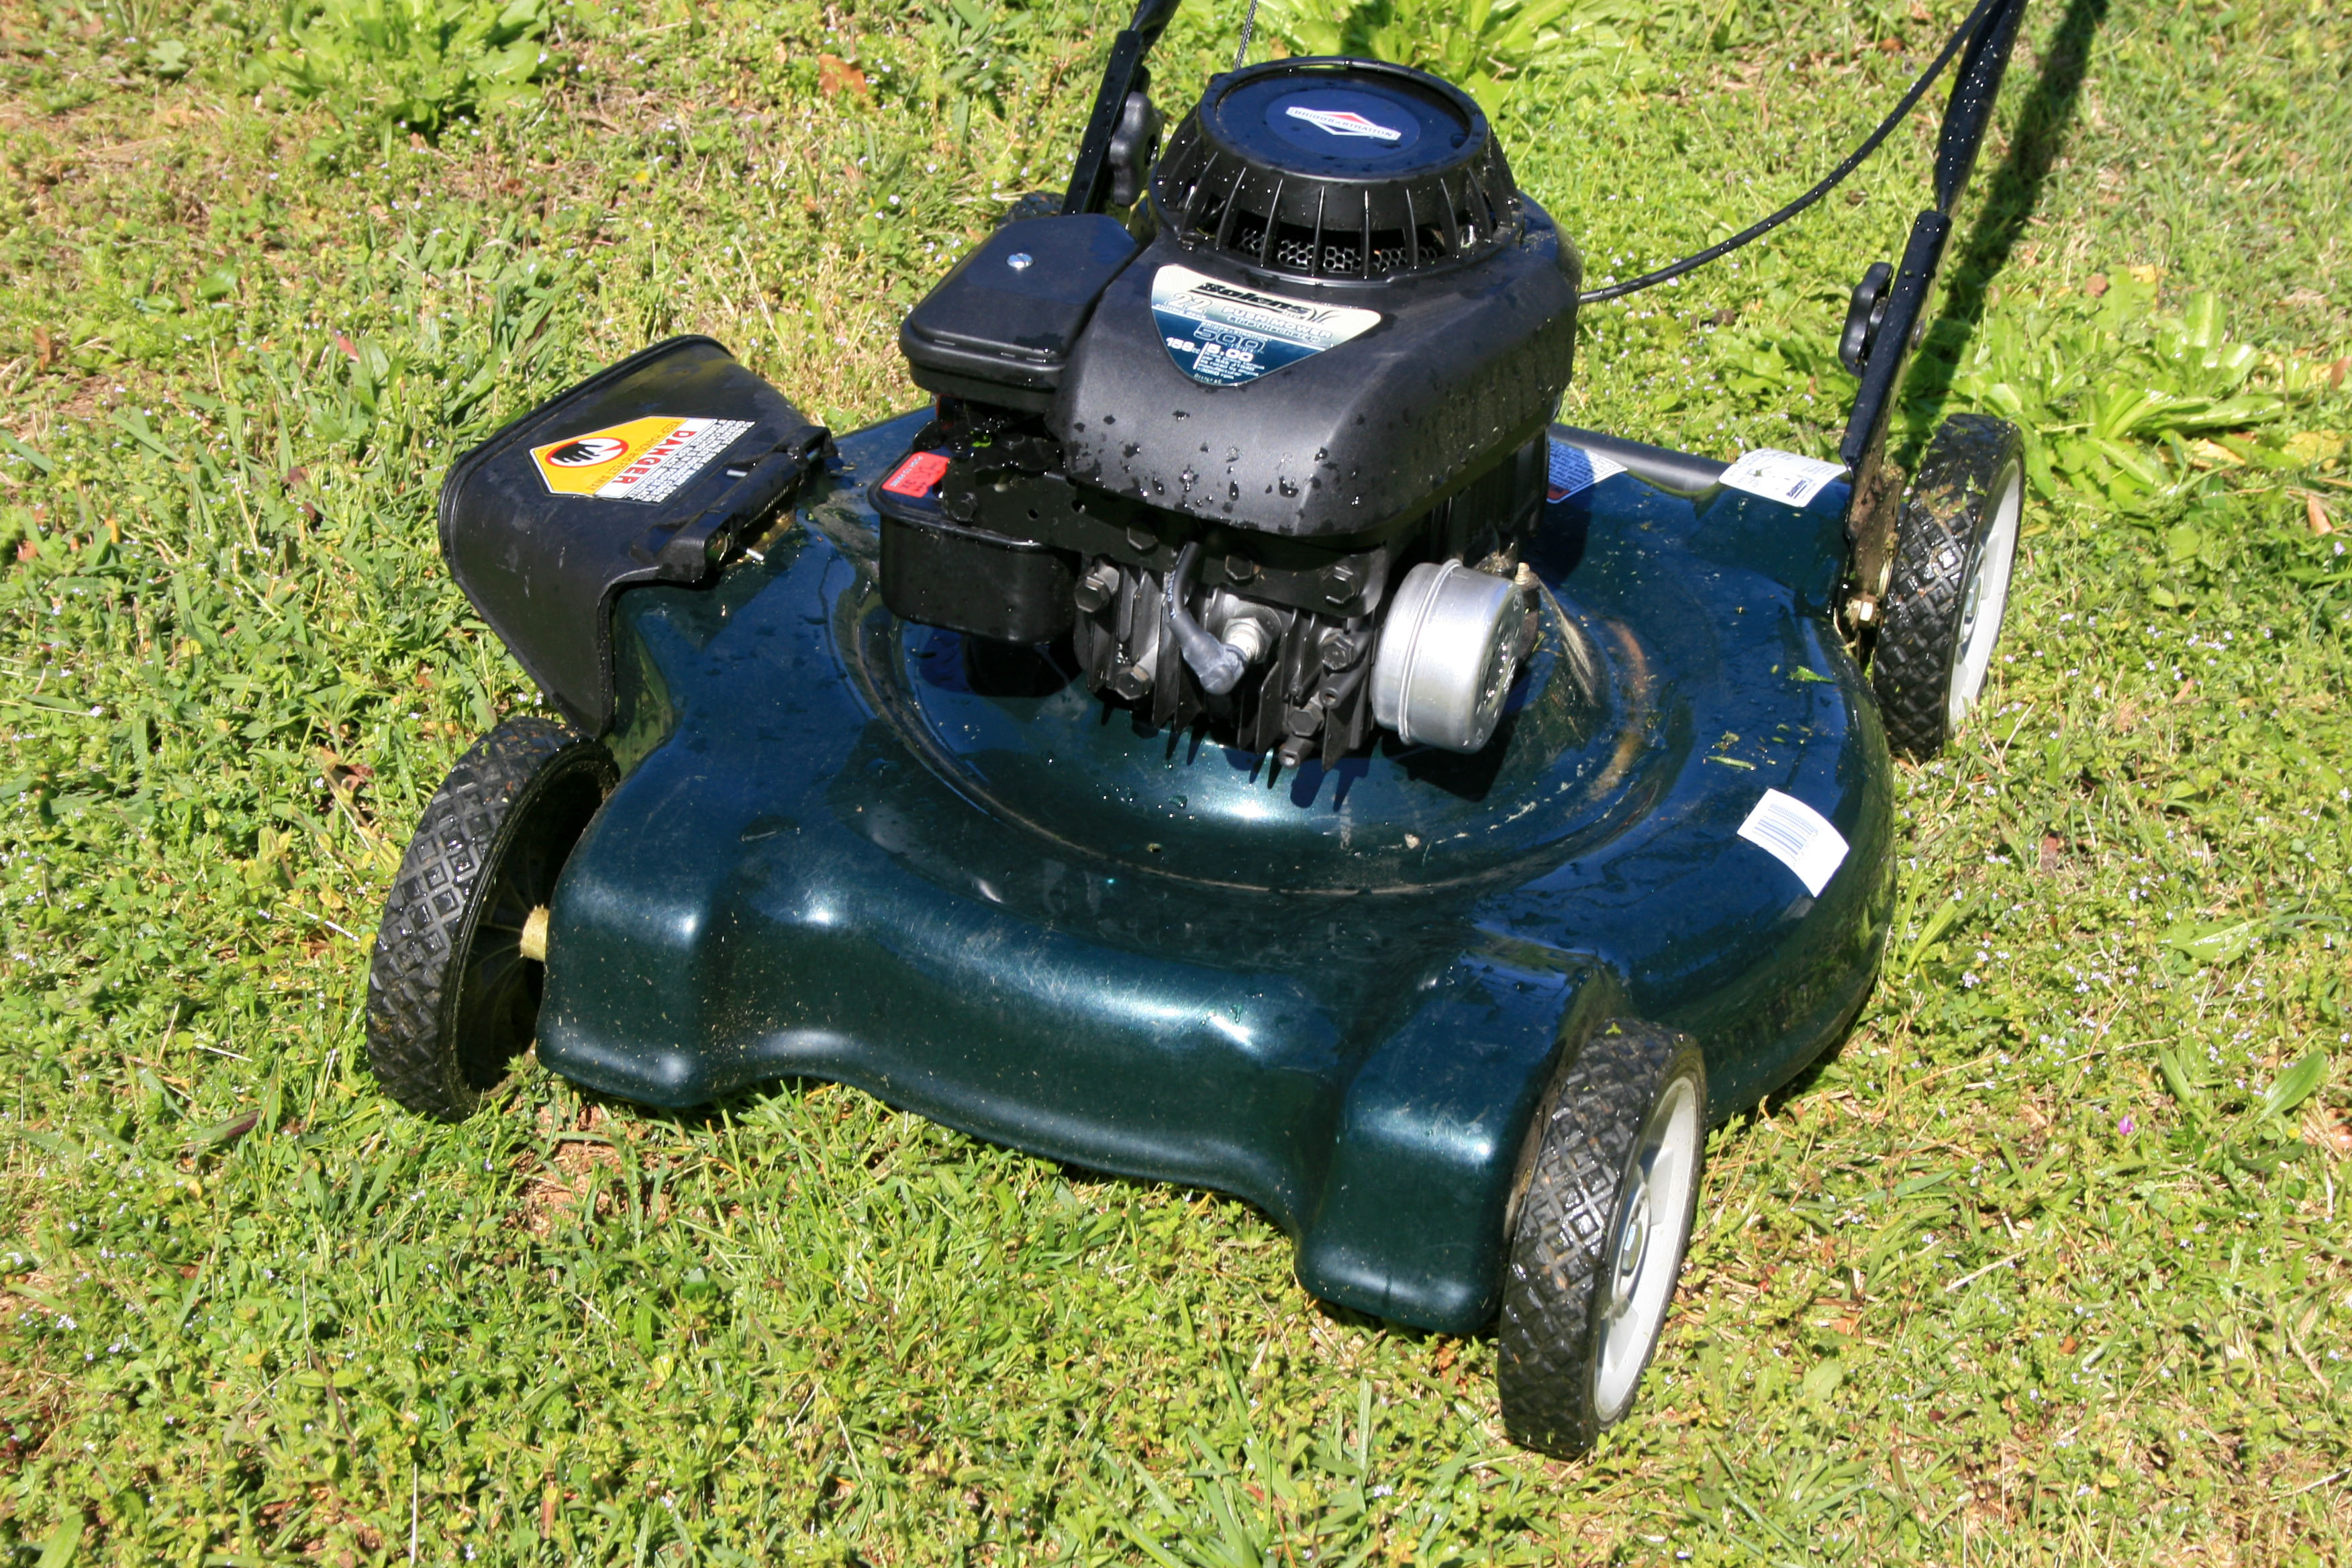 The key to a healthy lawn is knowing your turfgrass. If you are unsure what type of lawn you have, contact your local University of Georgia Cooperative Extension office for identification help. Knowing your grass type will help you manage mowing and fertilization with better results.